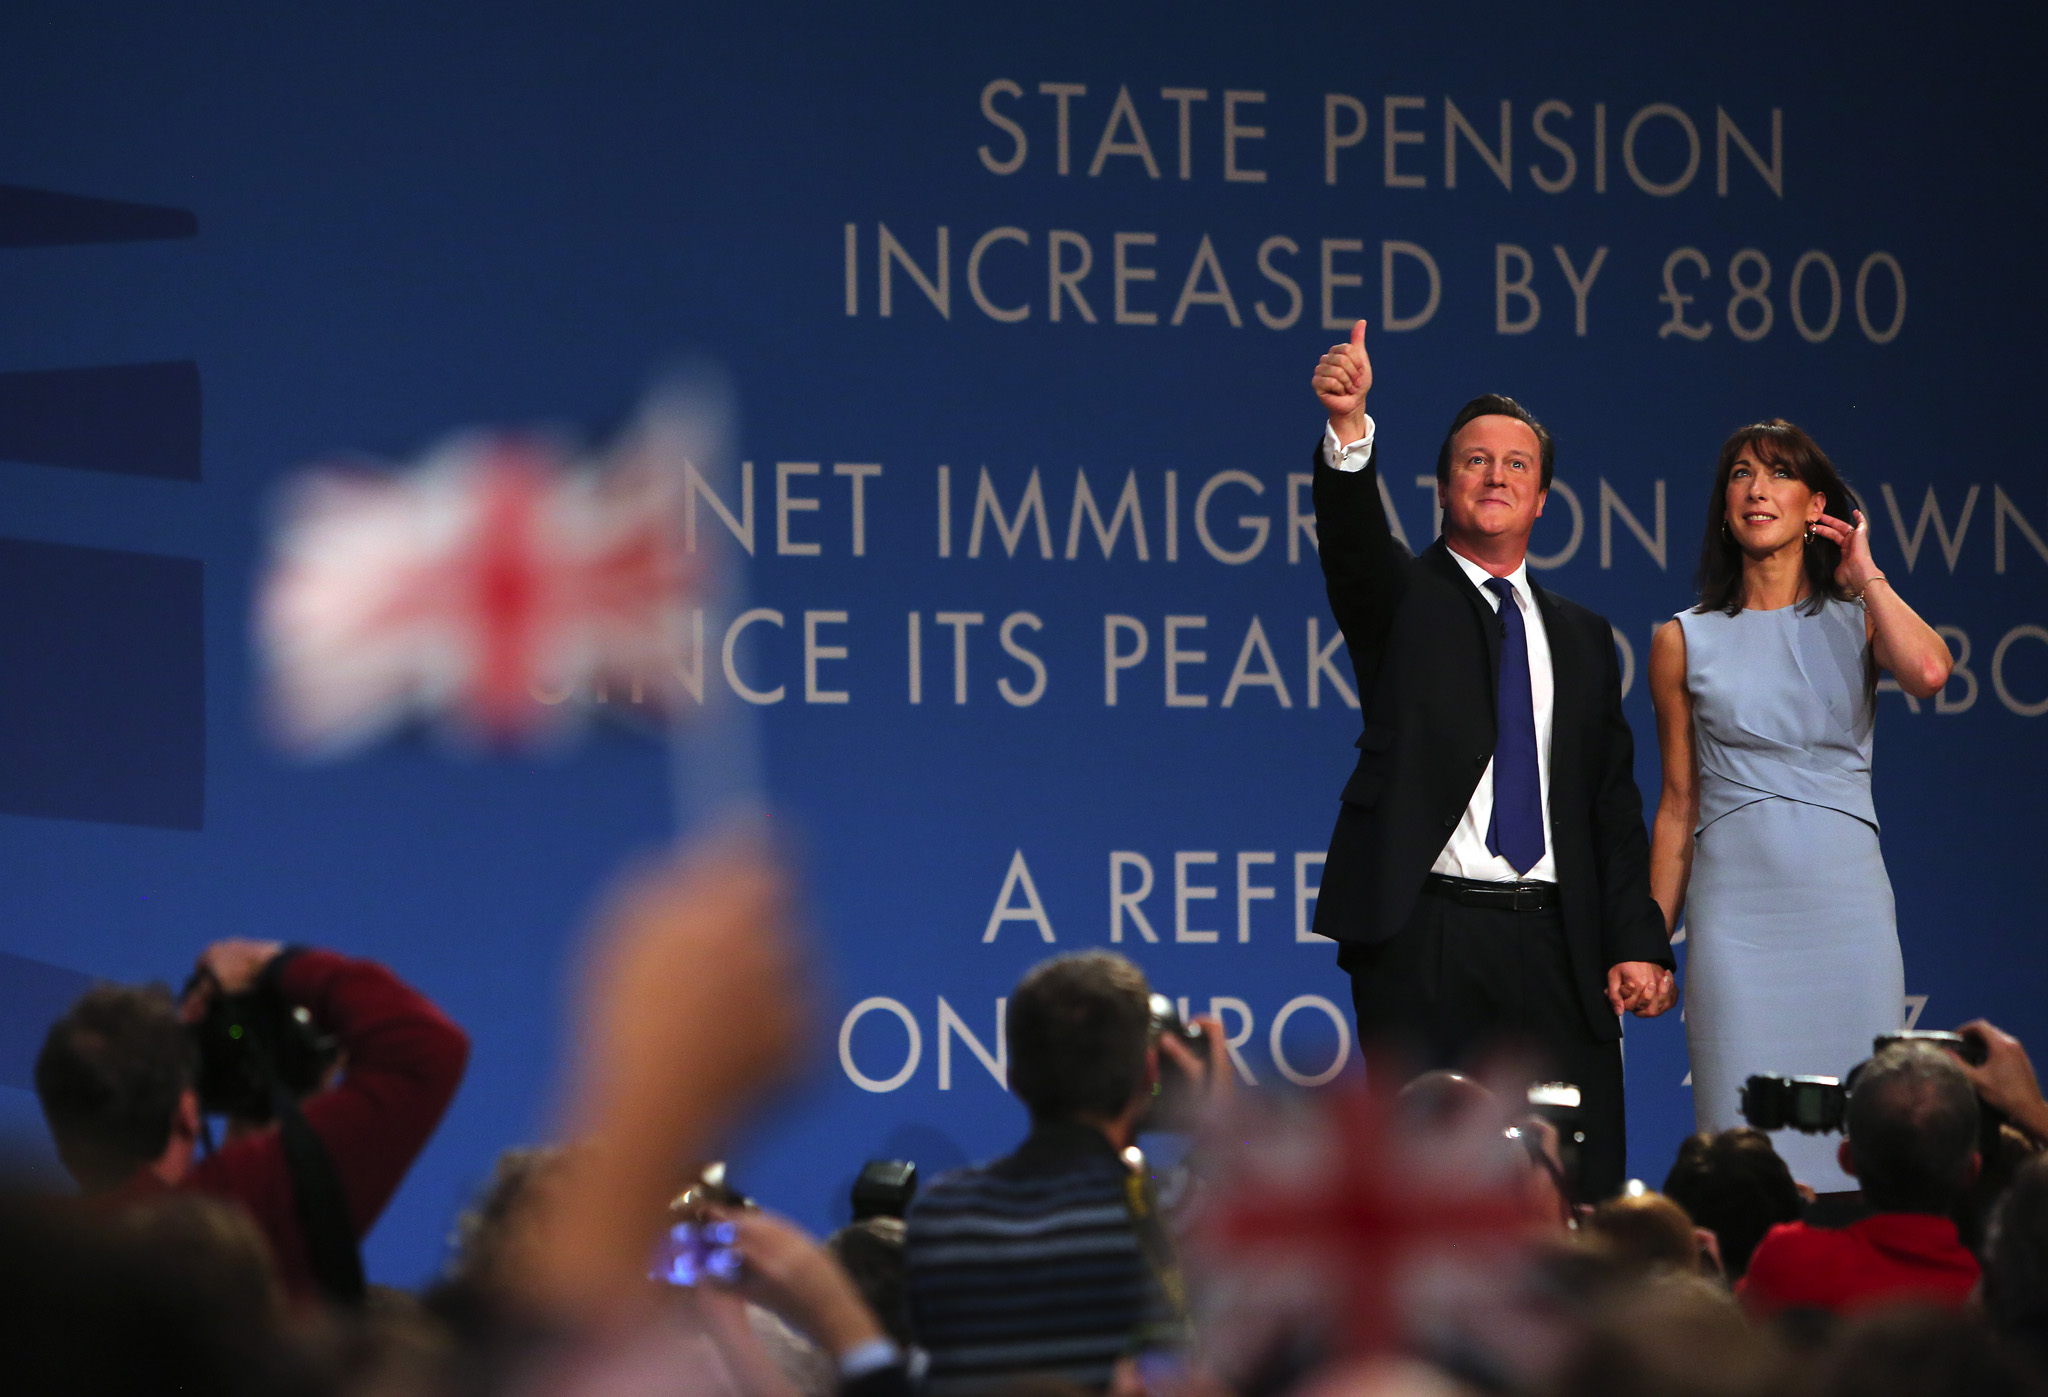 British Prime Minster, David Cameron, with his wife Samantha, following his closing speech at the Conservative party conference in Birmingham.